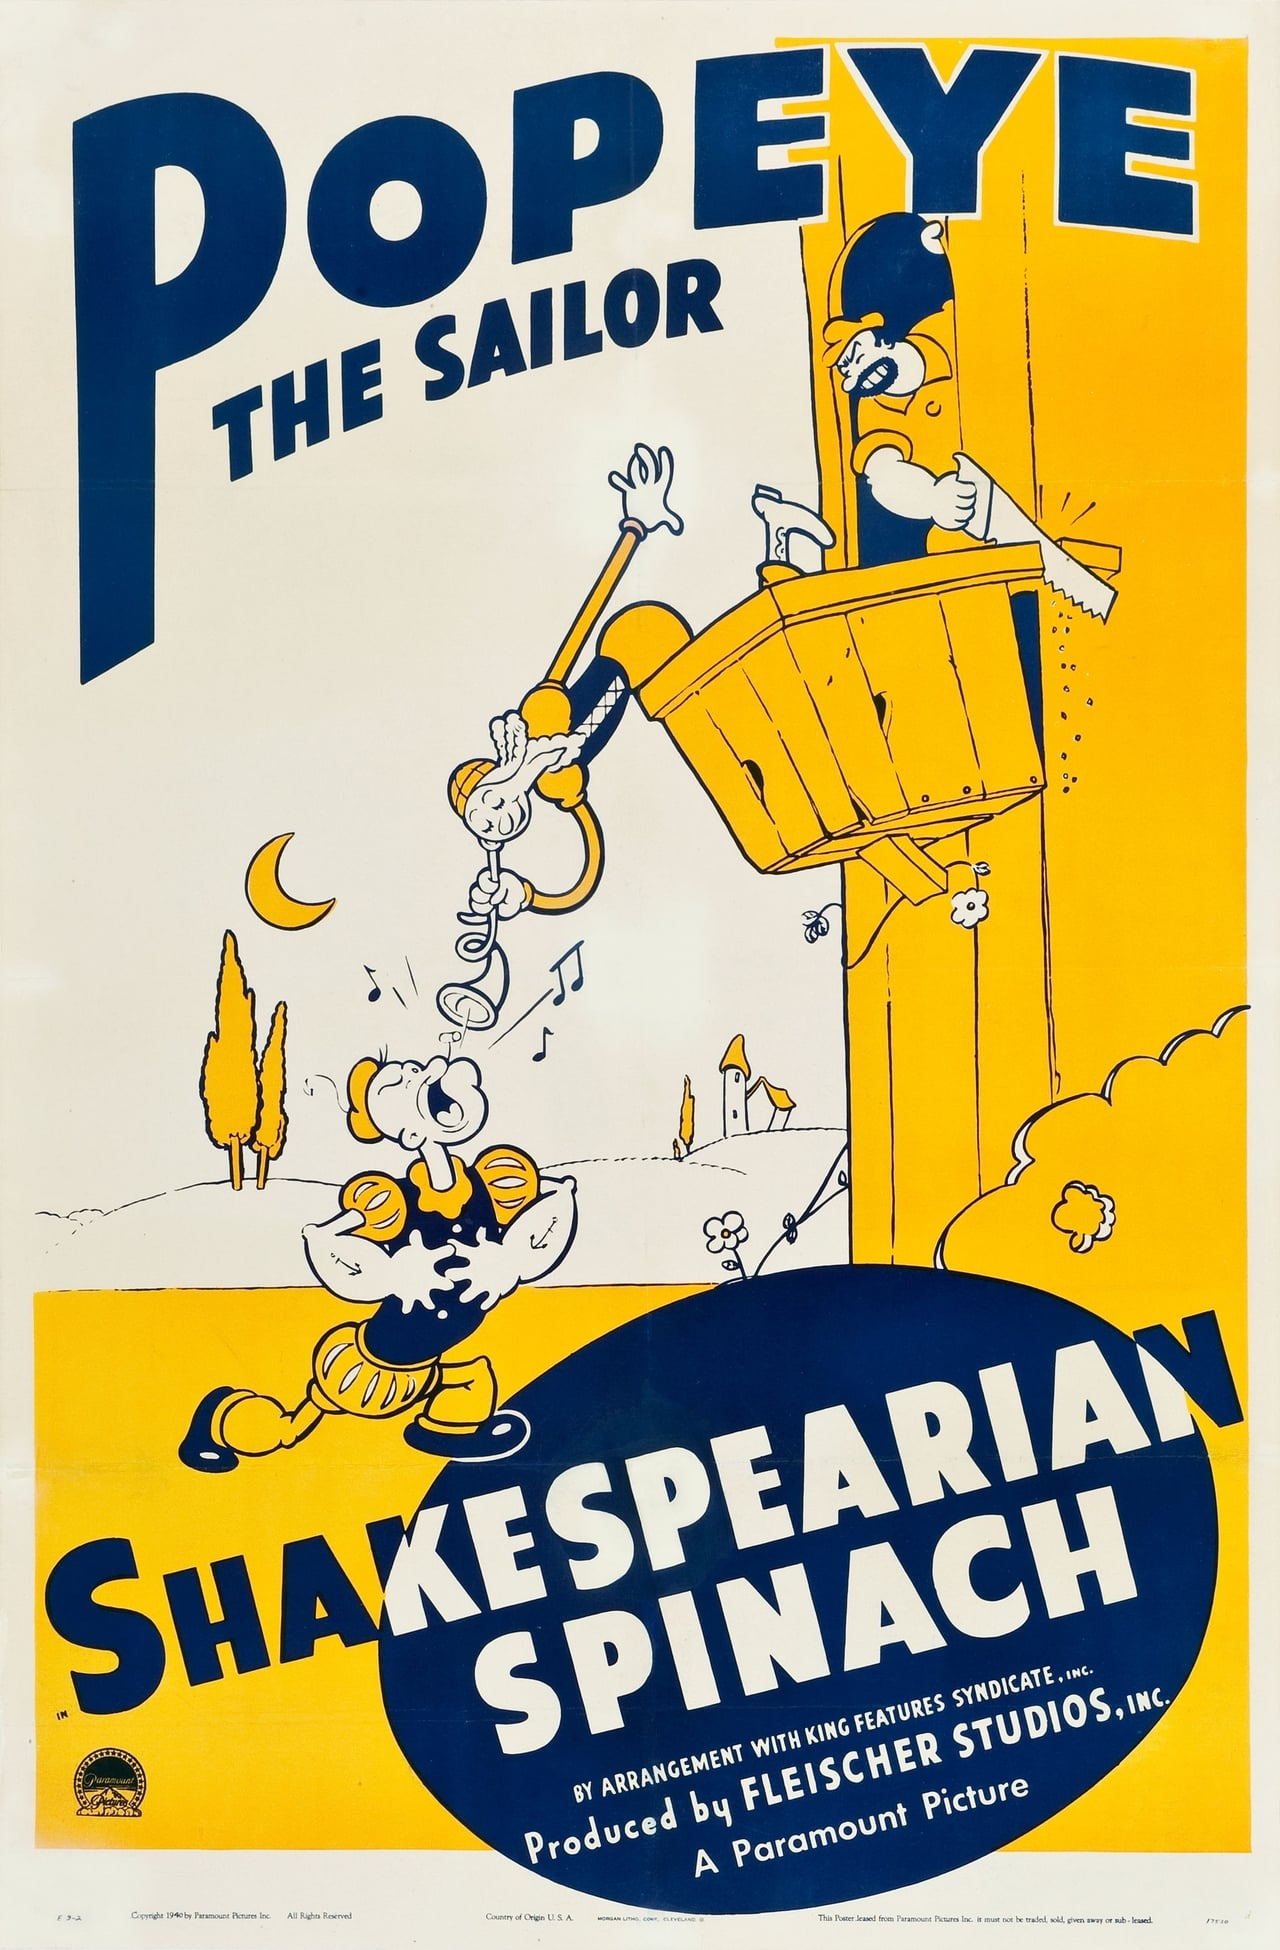 Shakespearian Spinach (1940)